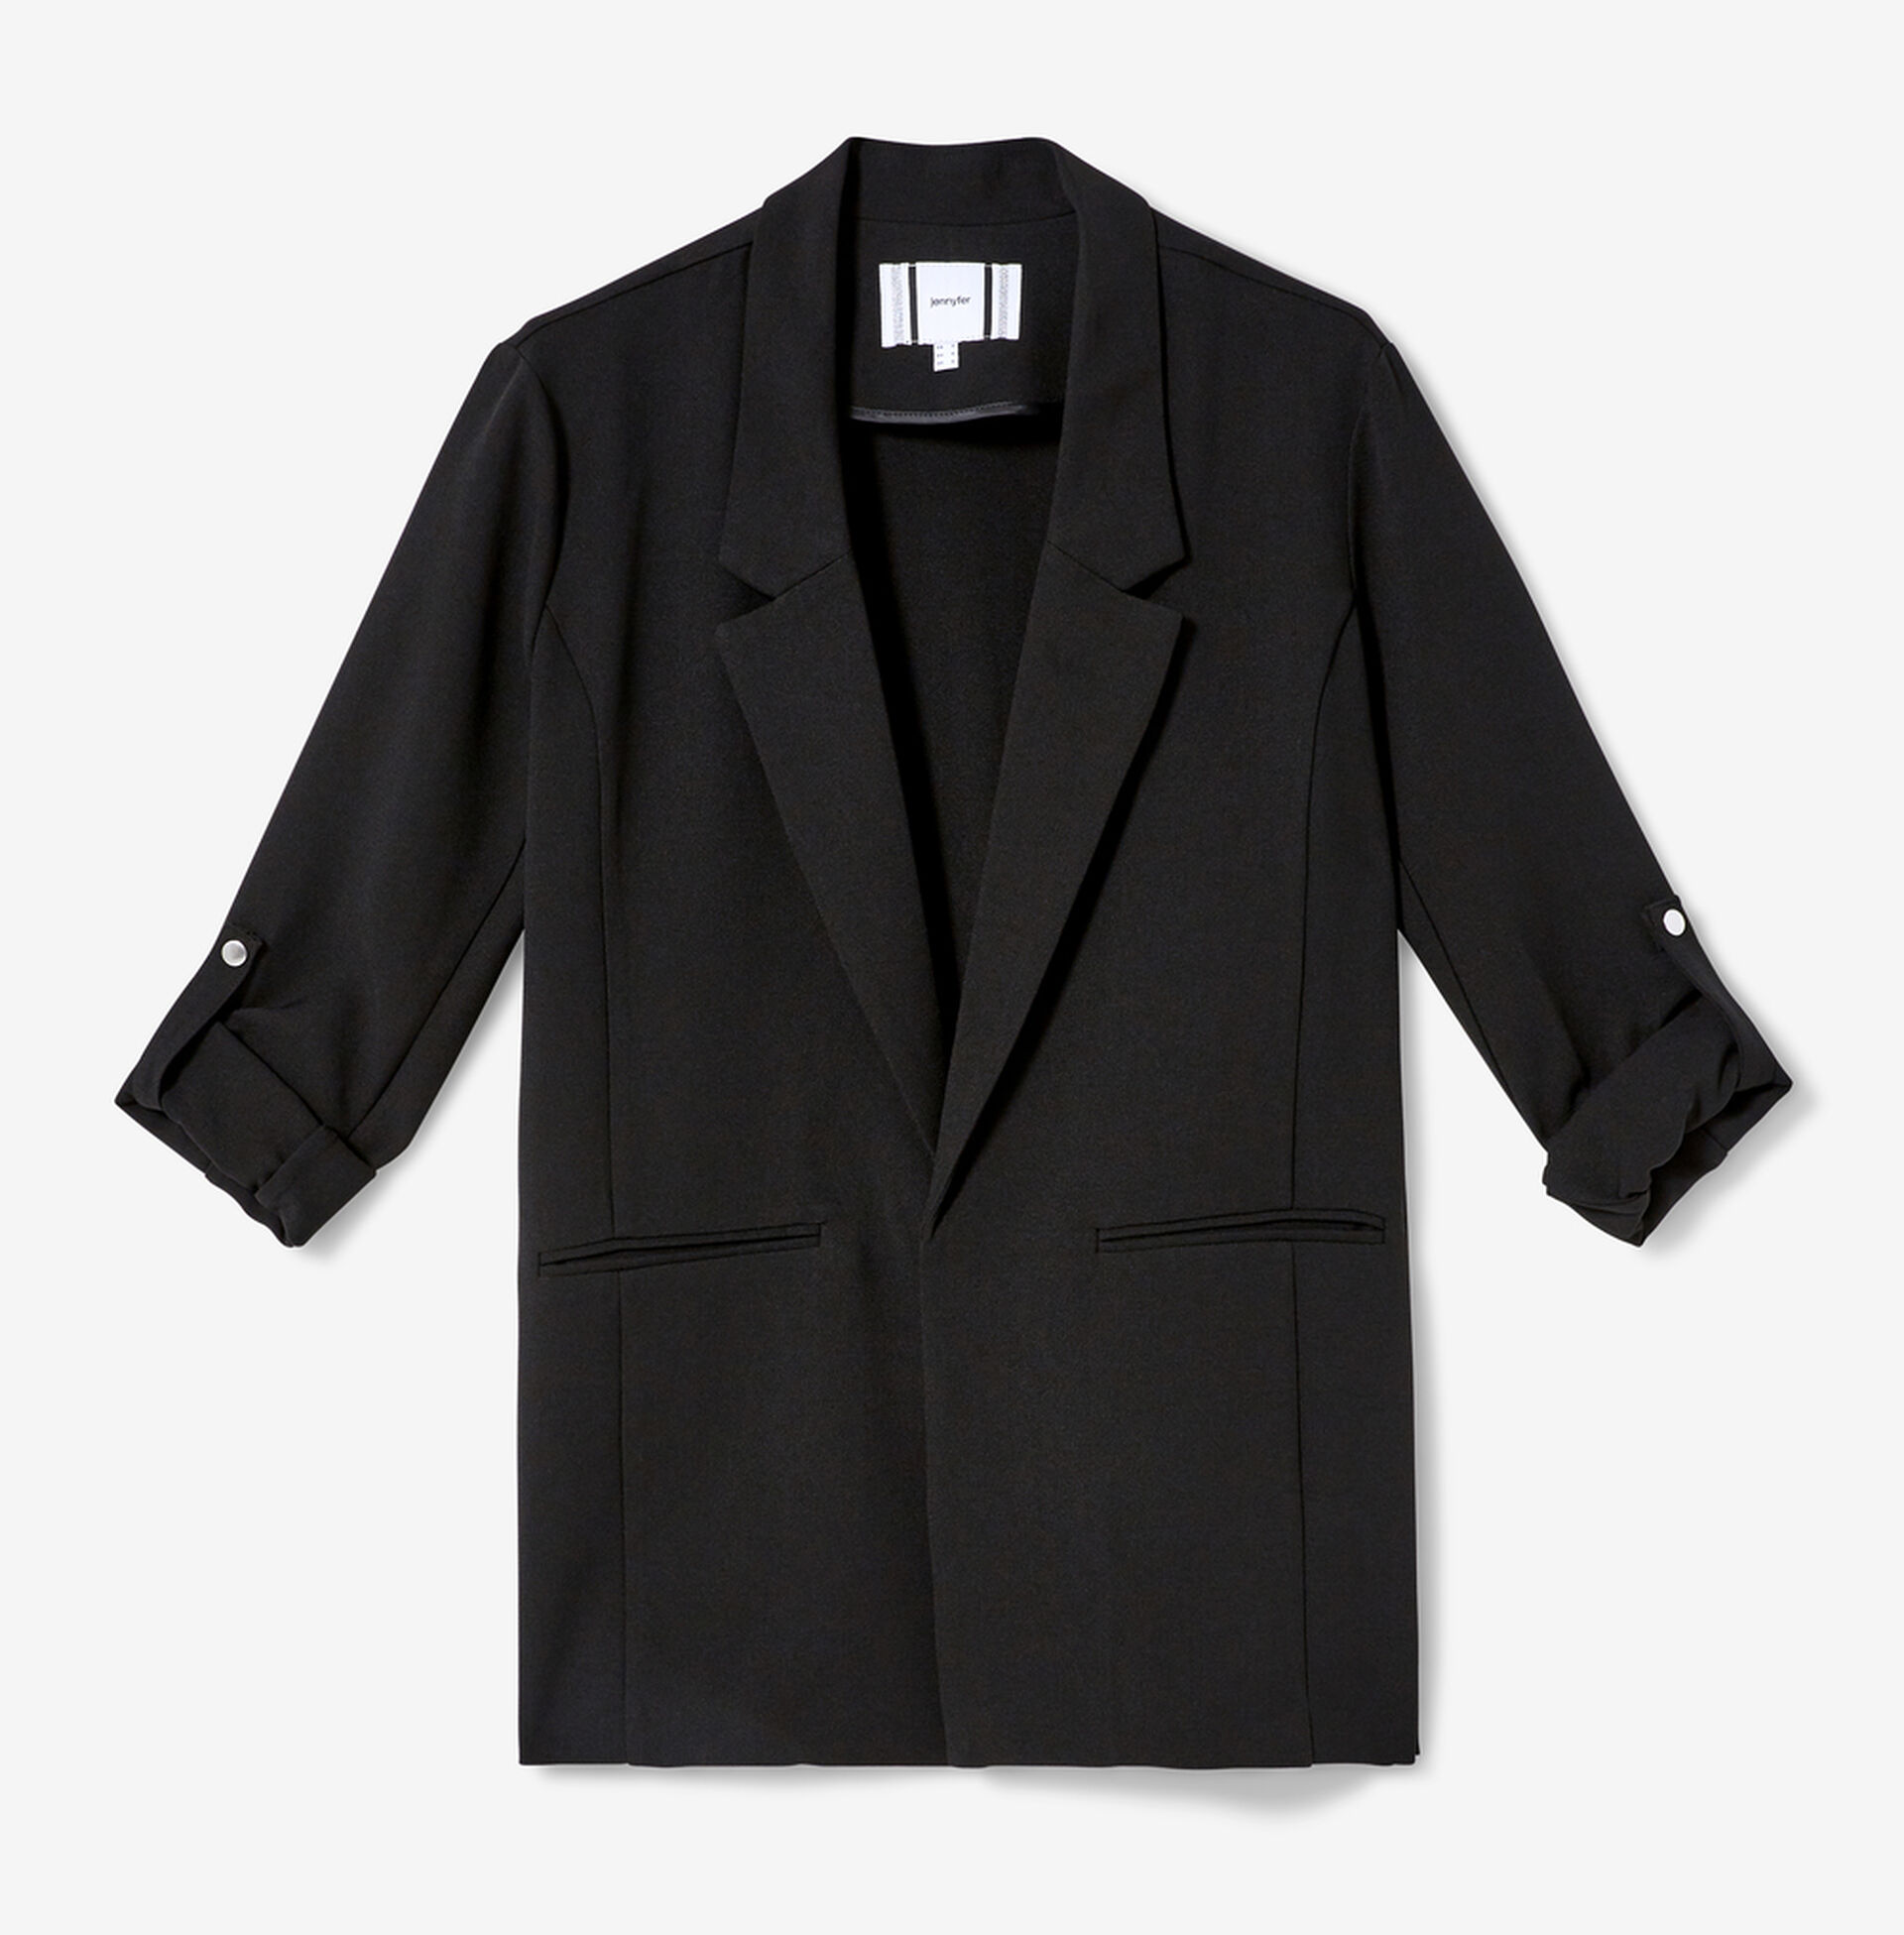 Black blazer with roll-up sleeves